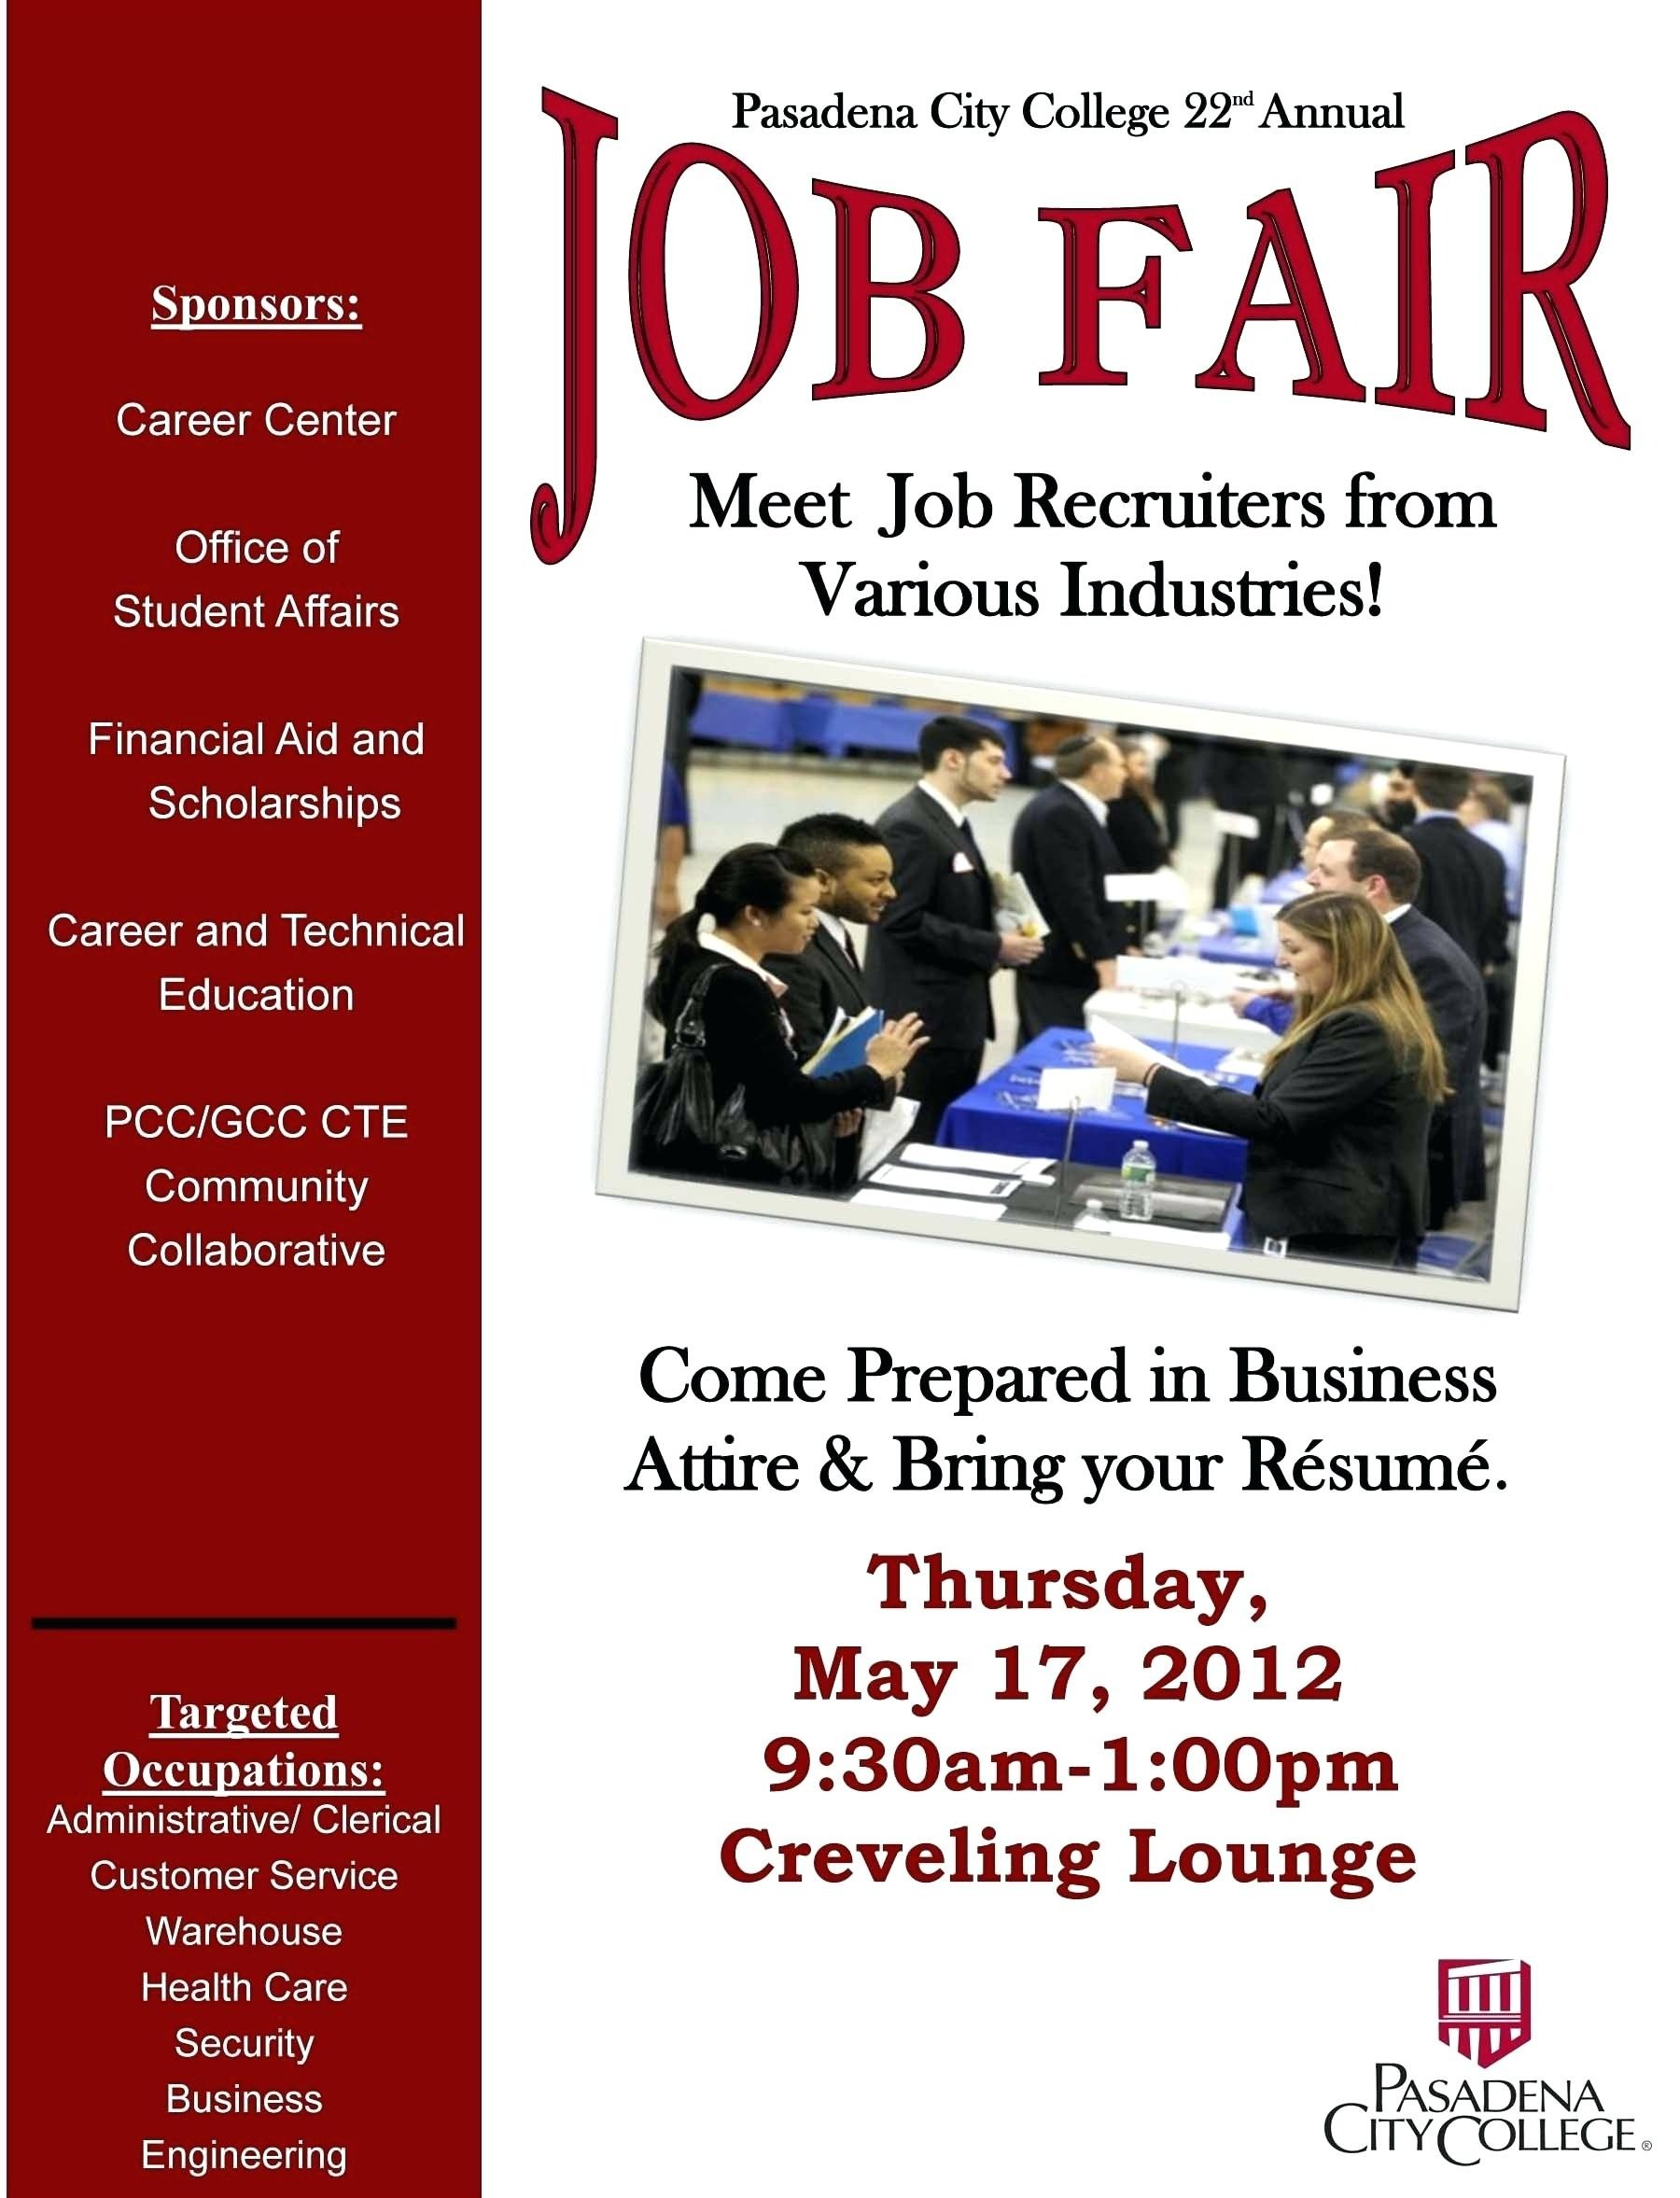 Job Fair Flyer Template Sample Job Fair Flyers